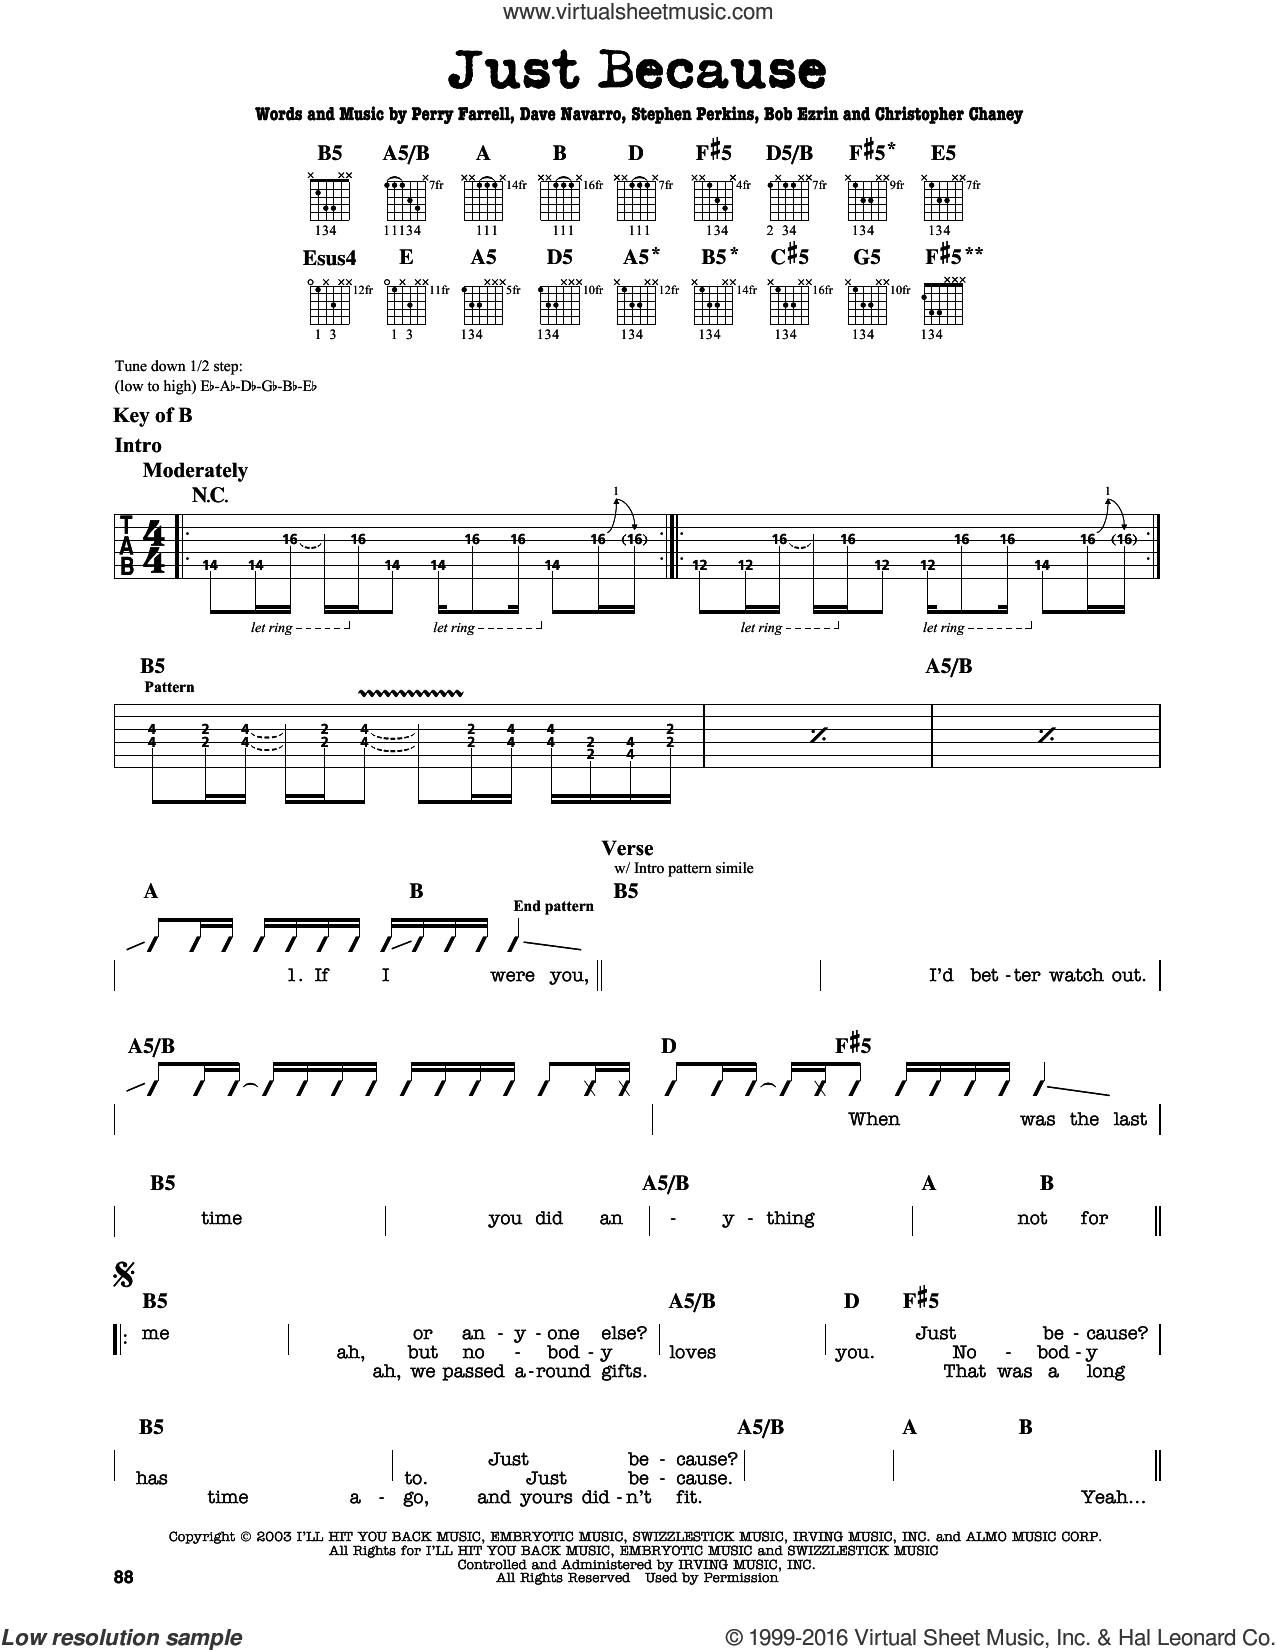 Just Because sheet music for guitar solo (lead sheet) by Jane's Addiction, Bob Ezrin, Christopher Chaney, Dave Navarro and Perry Farrell, intermediate guitar (lead sheet)